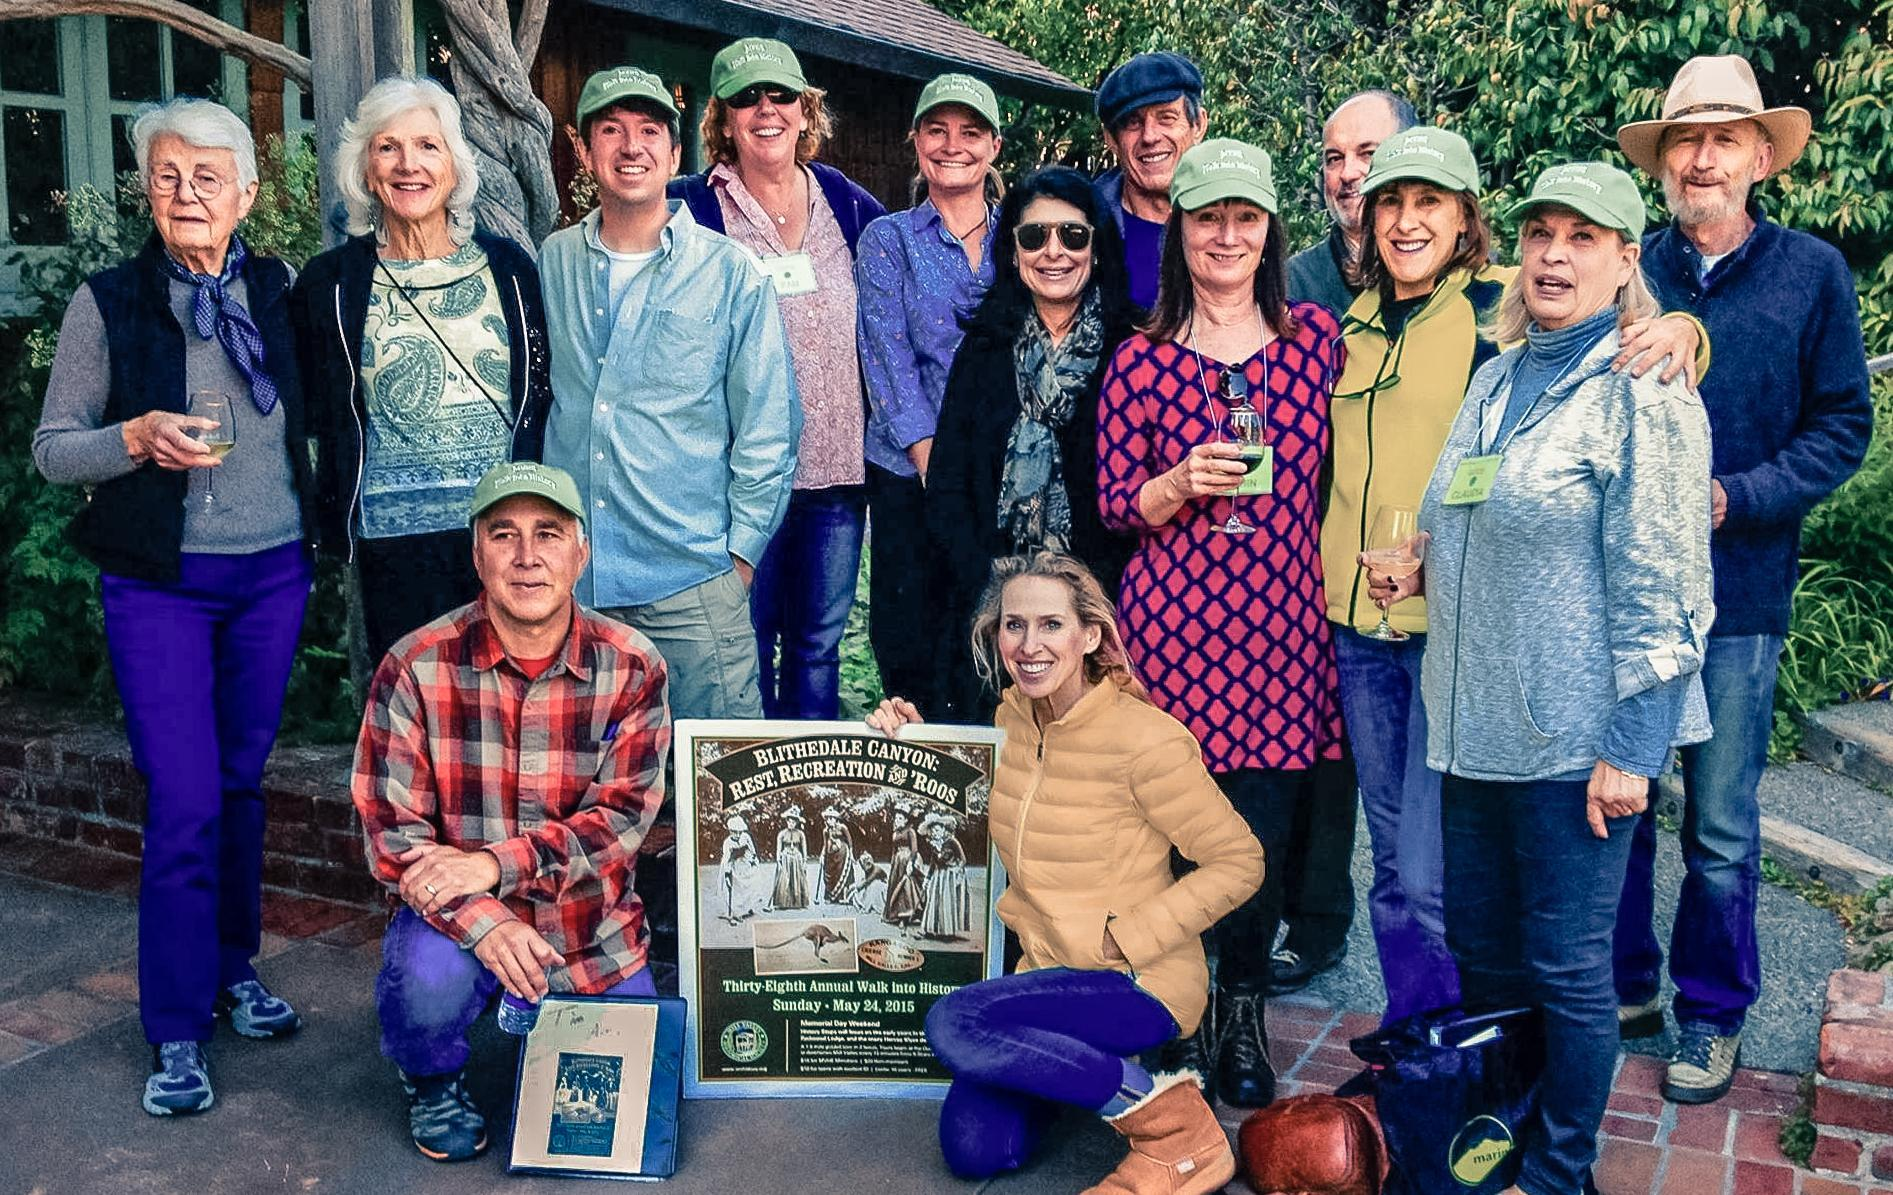 """Some of the 2015 38th Annual Mill Valley Historical Society's """"Back into History"""" Tour guides - click to enlarge"""